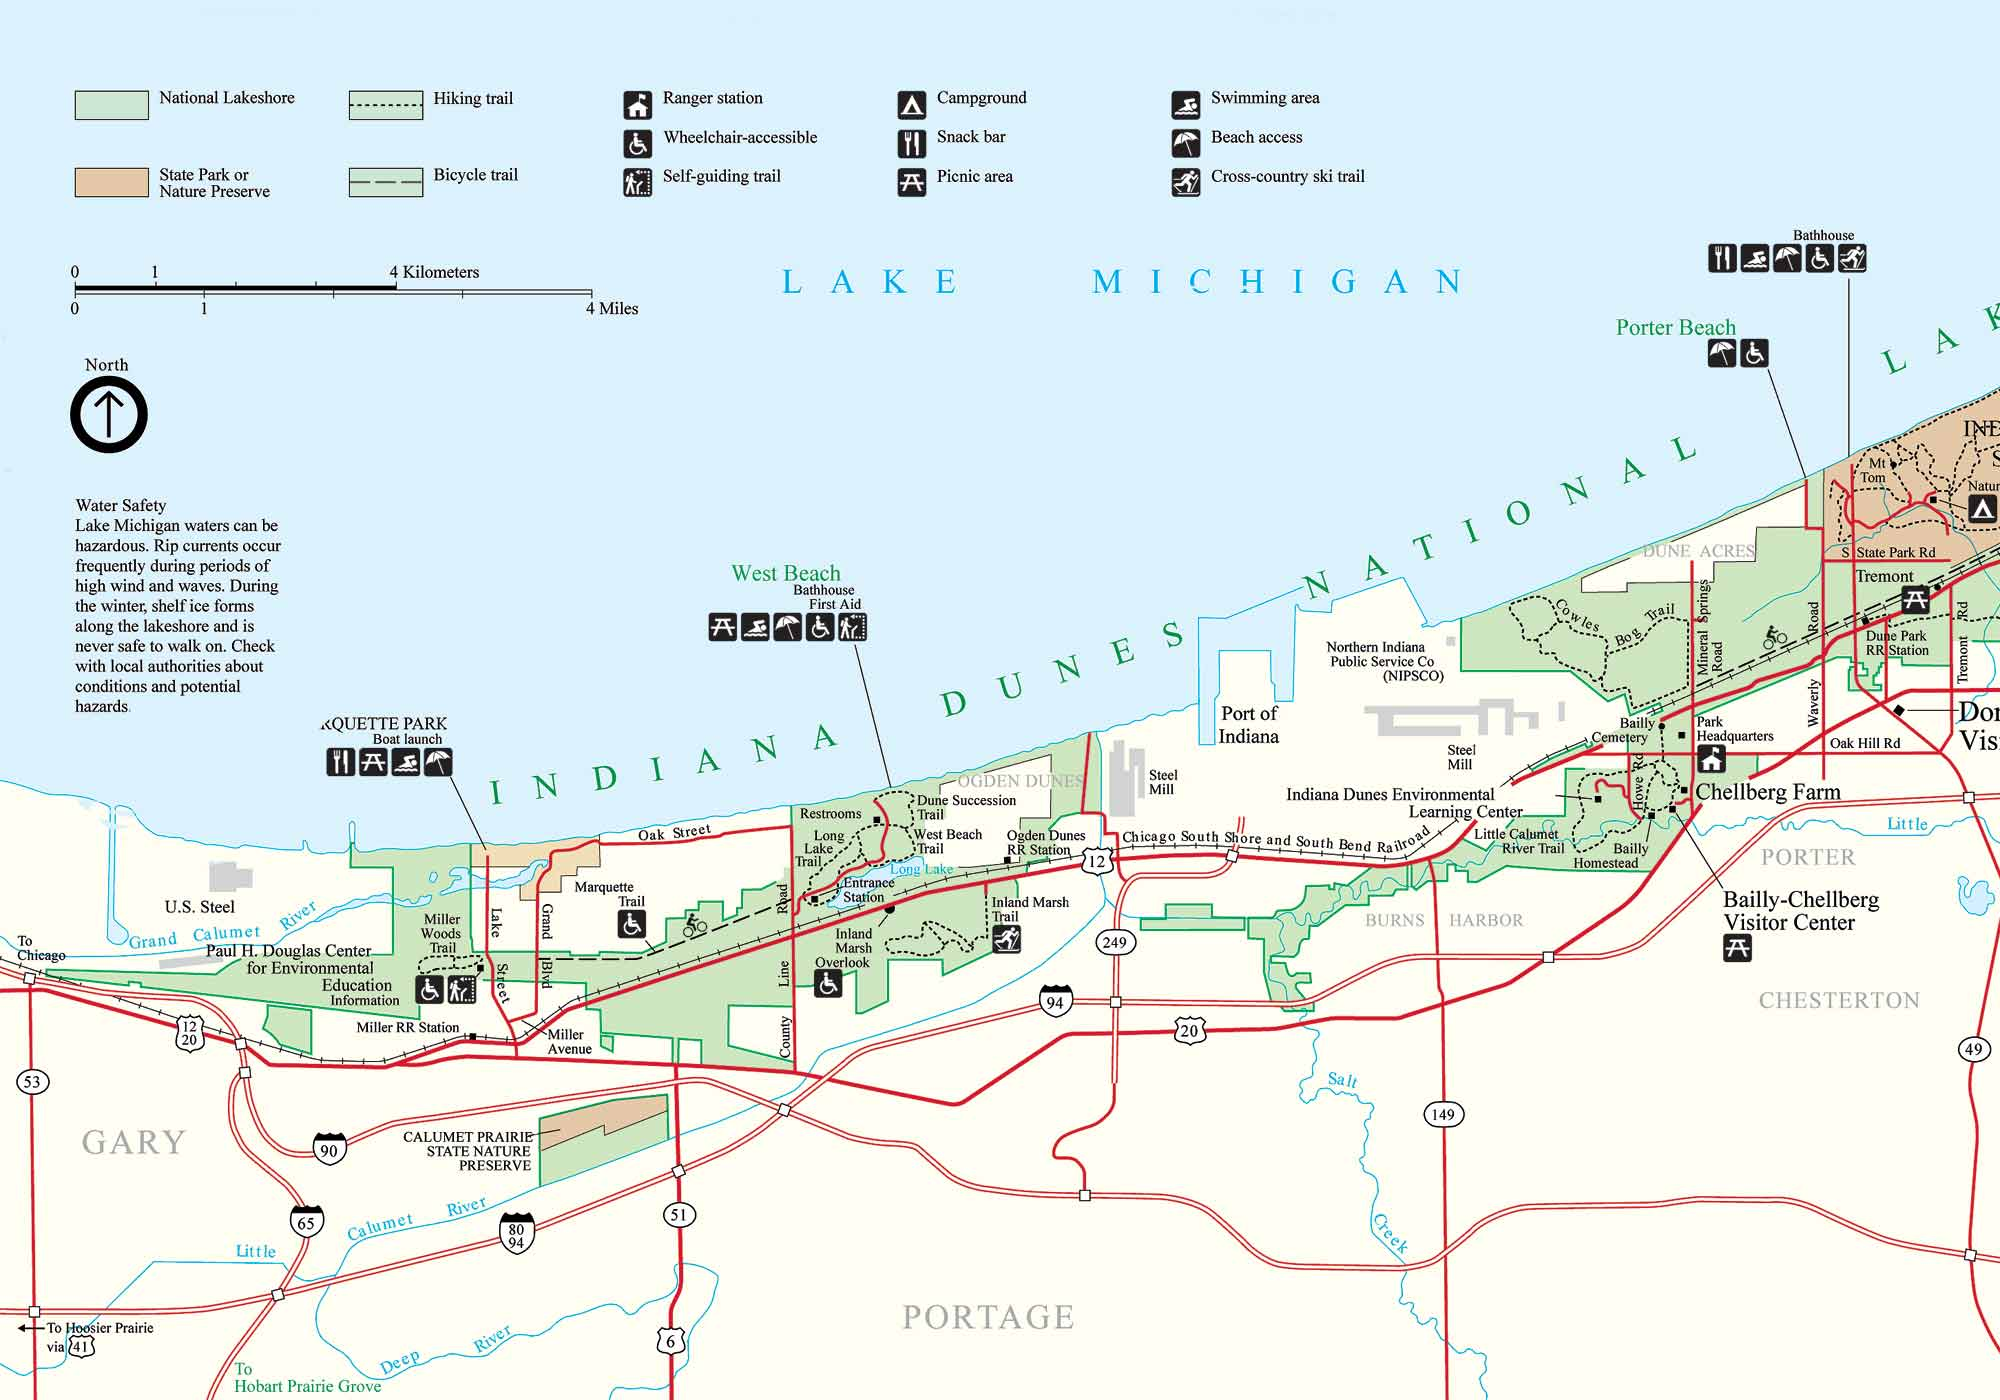 Indiana Dunes Park Map Gary Indiana USA  Mappery - Indiana on a map of the usa